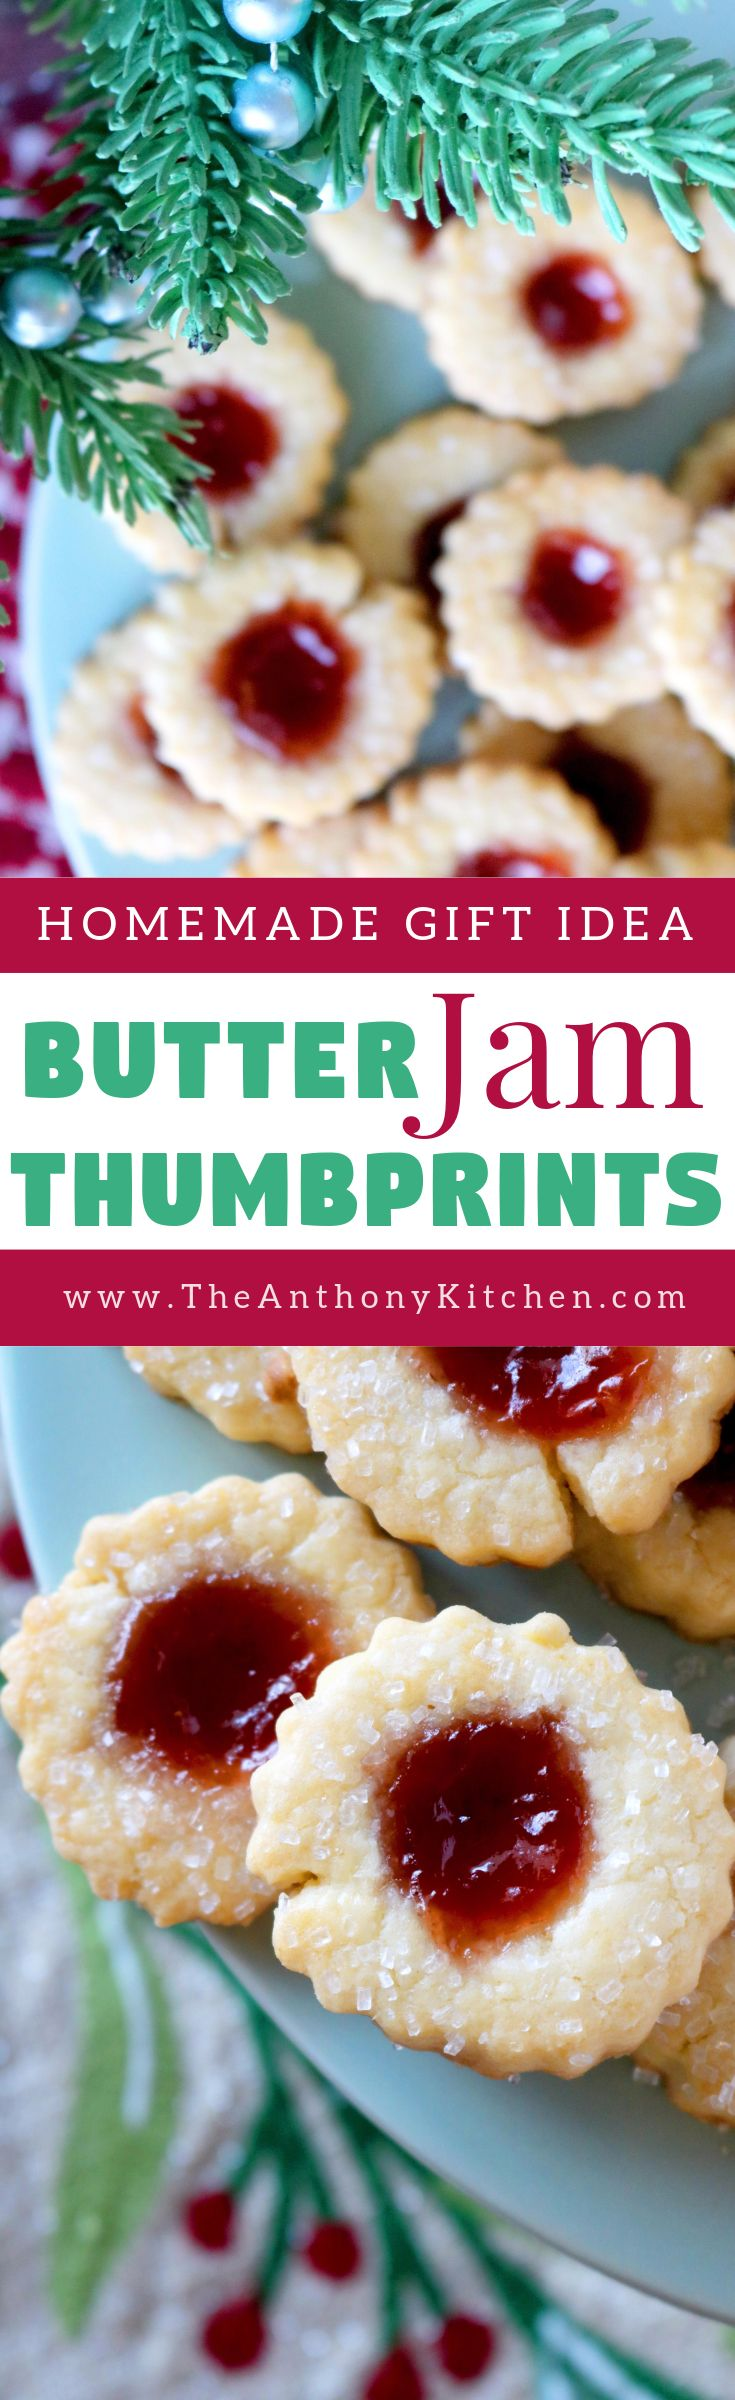 Holiday Thumbprint Cookies | A recipe for butter jam thumbprint cookies, featuring a melt-in-your-mouth, buttery cookie filled with strawberry jam and sprinkle with sparkling sugar | #butterjamcookies #christmascookies #thumbprintcookies #homemade #cookierecipe